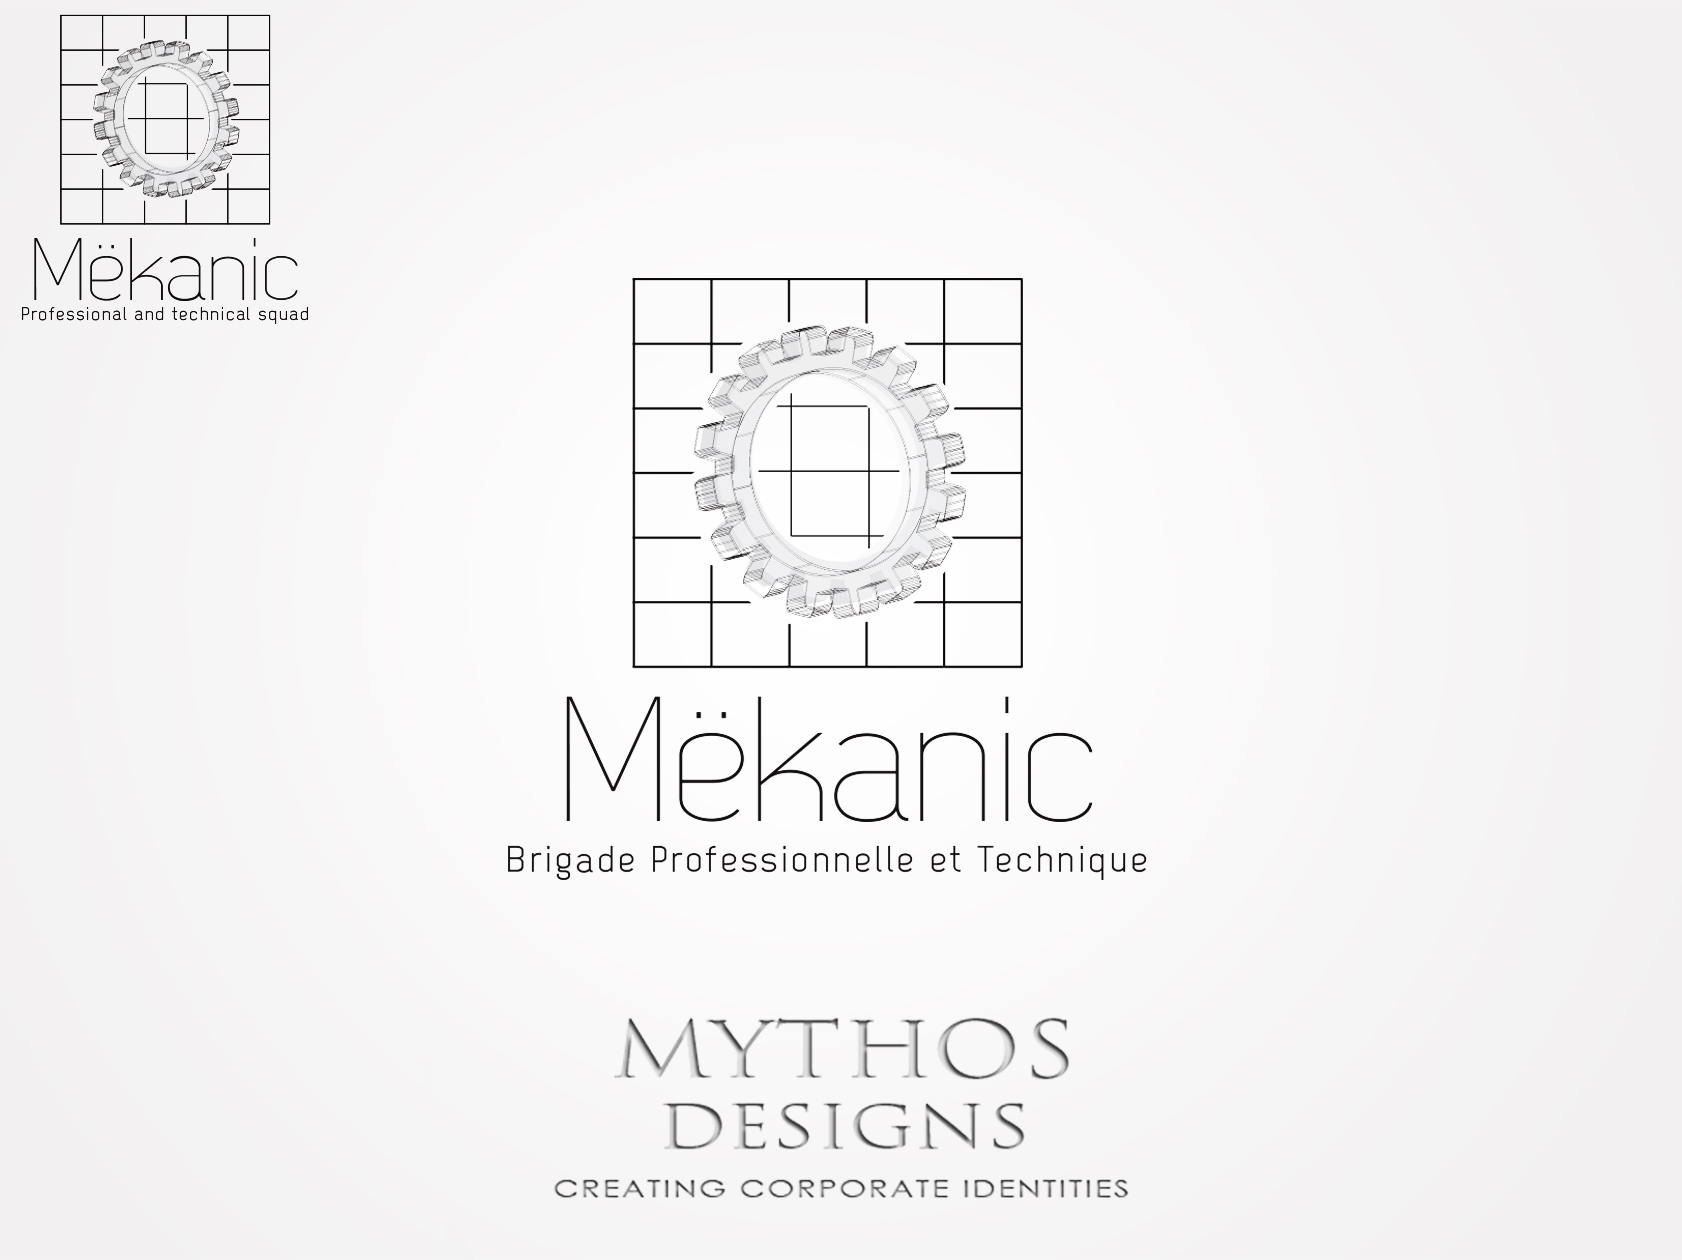 Logo Design by Mythos Designs - Entry No. 165 in the Logo Design Contest Creative Logo Design for MËKANIC - Professional and technical squad.